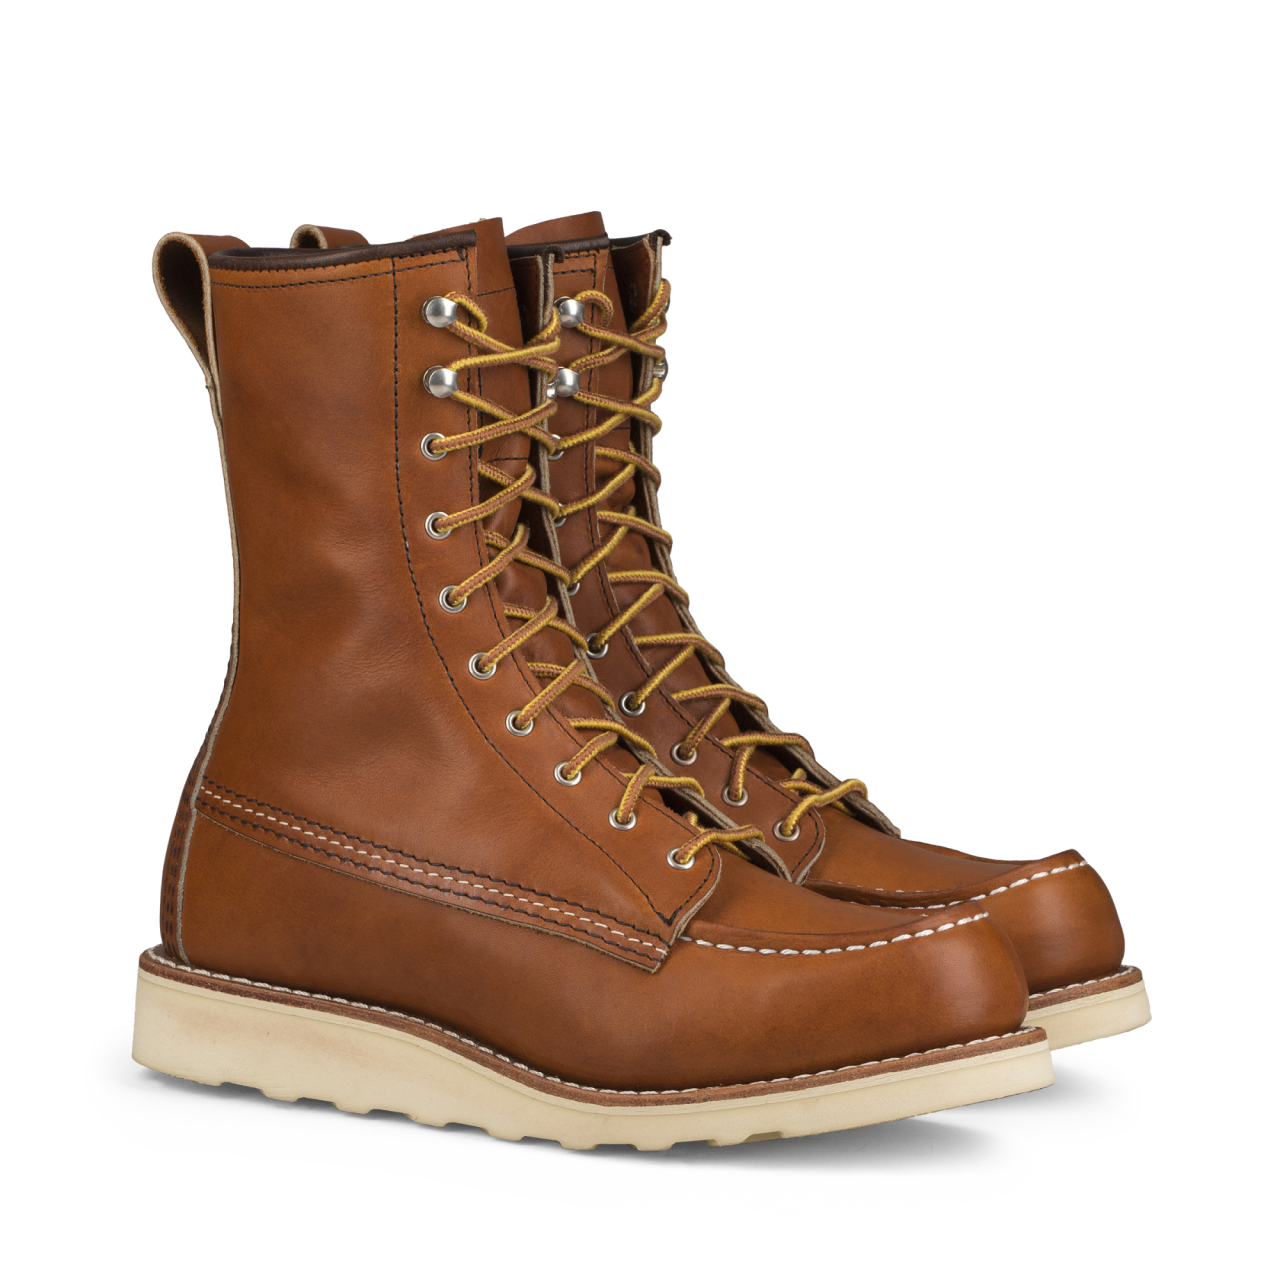 Red Wing 3427 Moc Toe